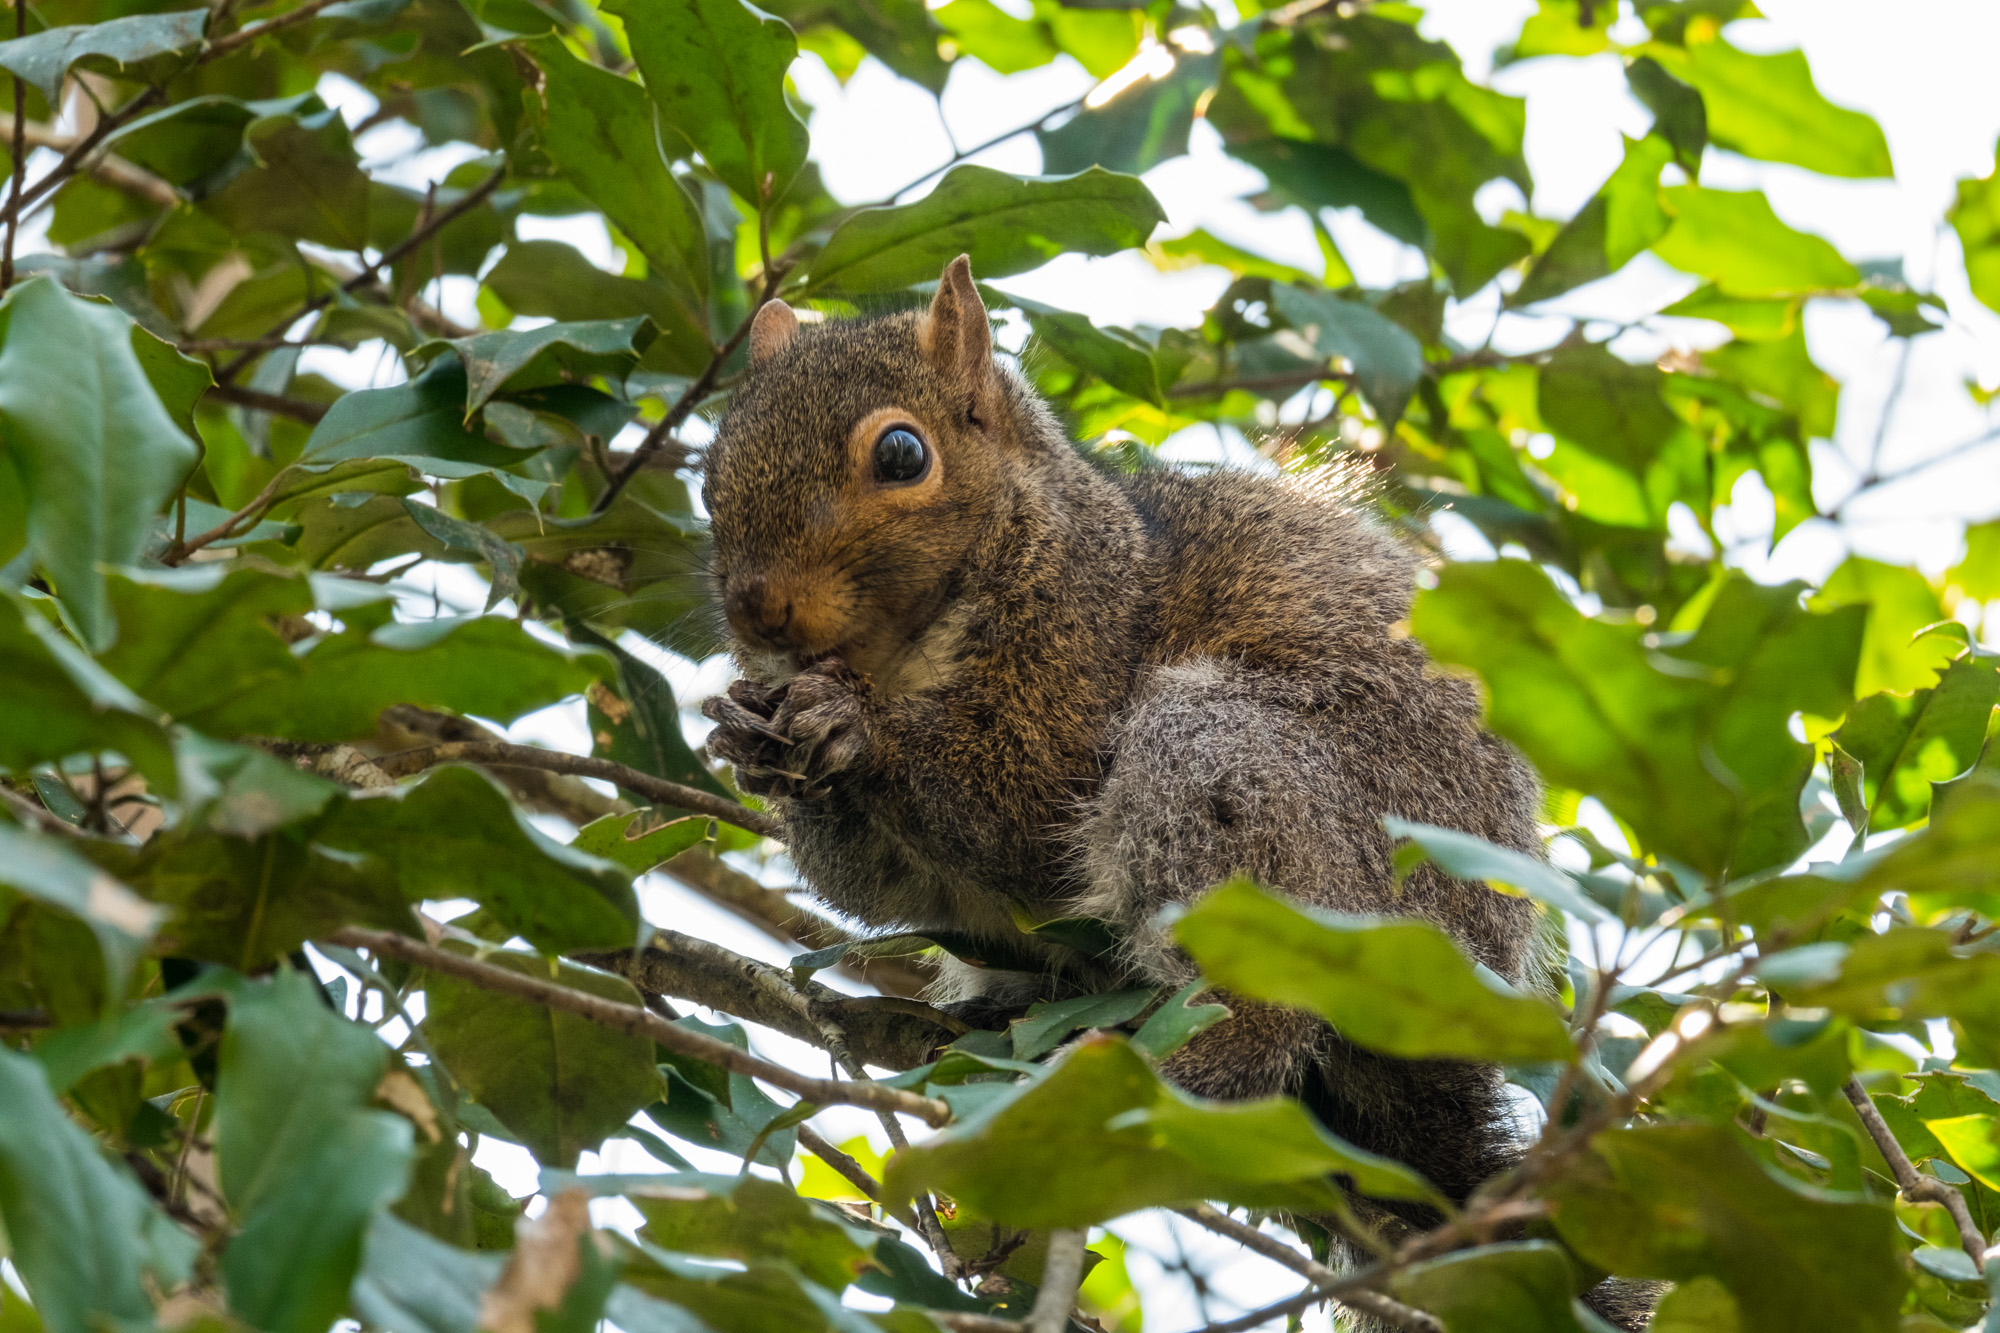 And here's that squirrel.